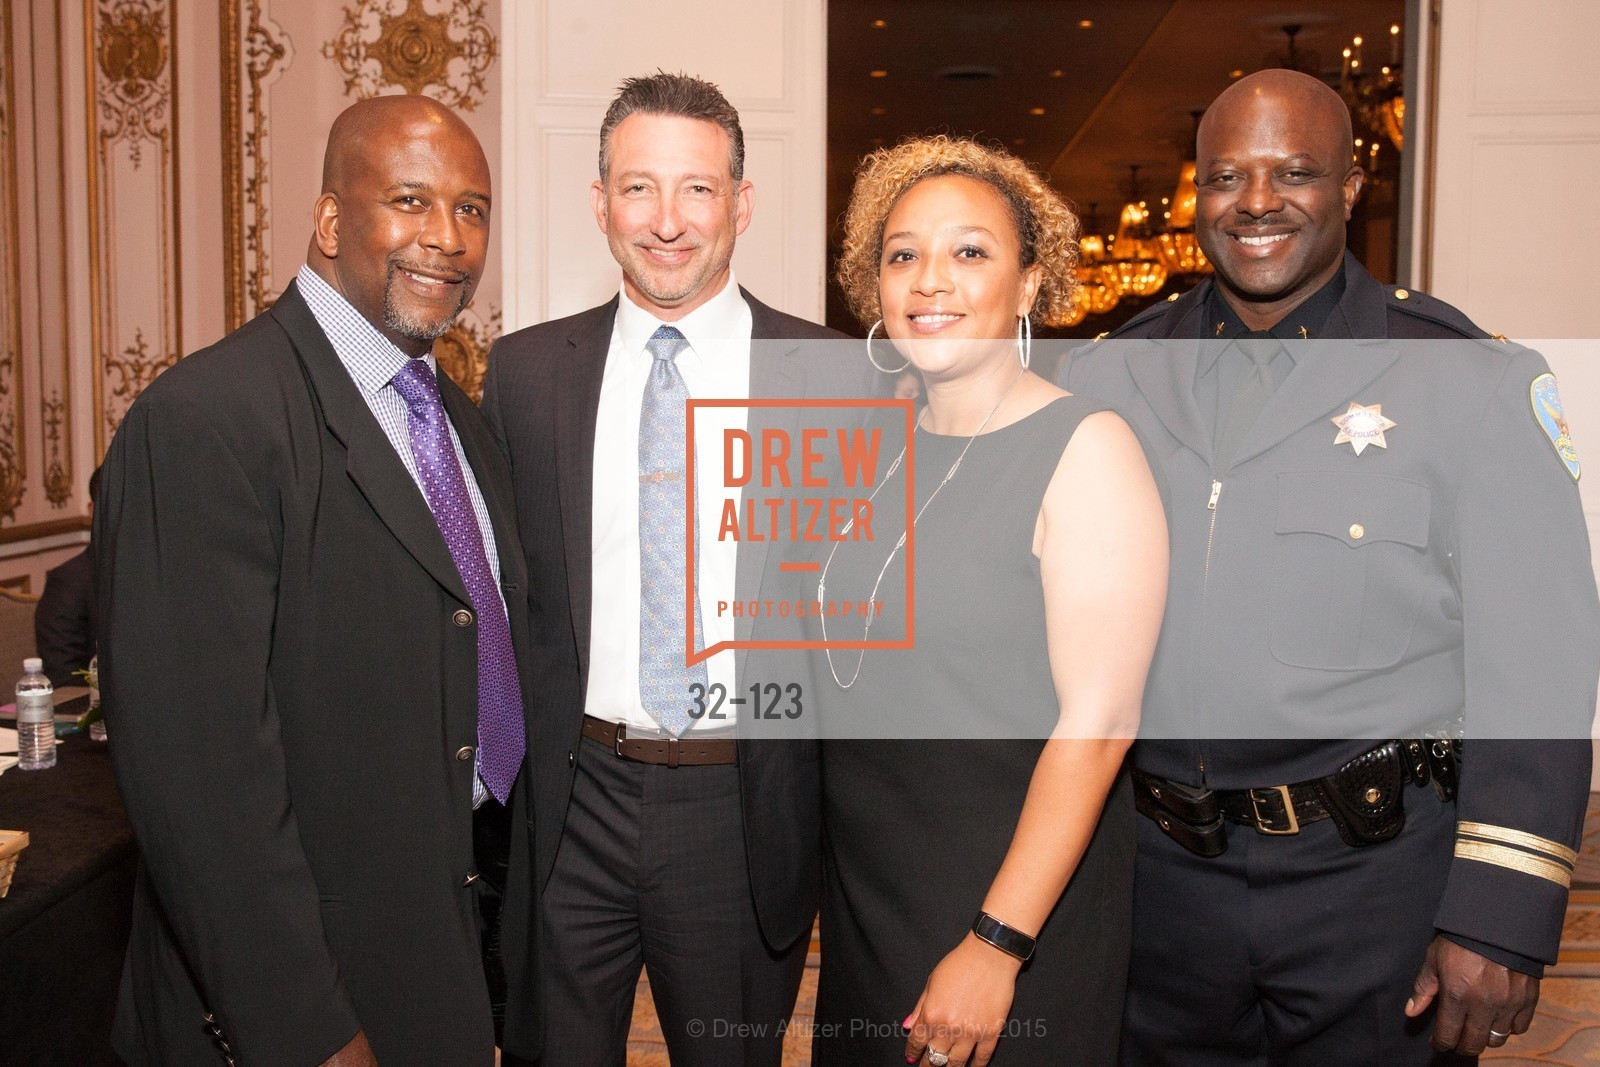 Van Jackson, Frank Carrubba, Maxine Wilson, Mikail Ali, 2015 Boys and Girls Club Annual Gala, The Fairmont San Francisco. 950 Mason St, May 20th, 2015,Drew Altizer, Drew Altizer Photography, full-service agency, private events, San Francisco photographer, photographer california